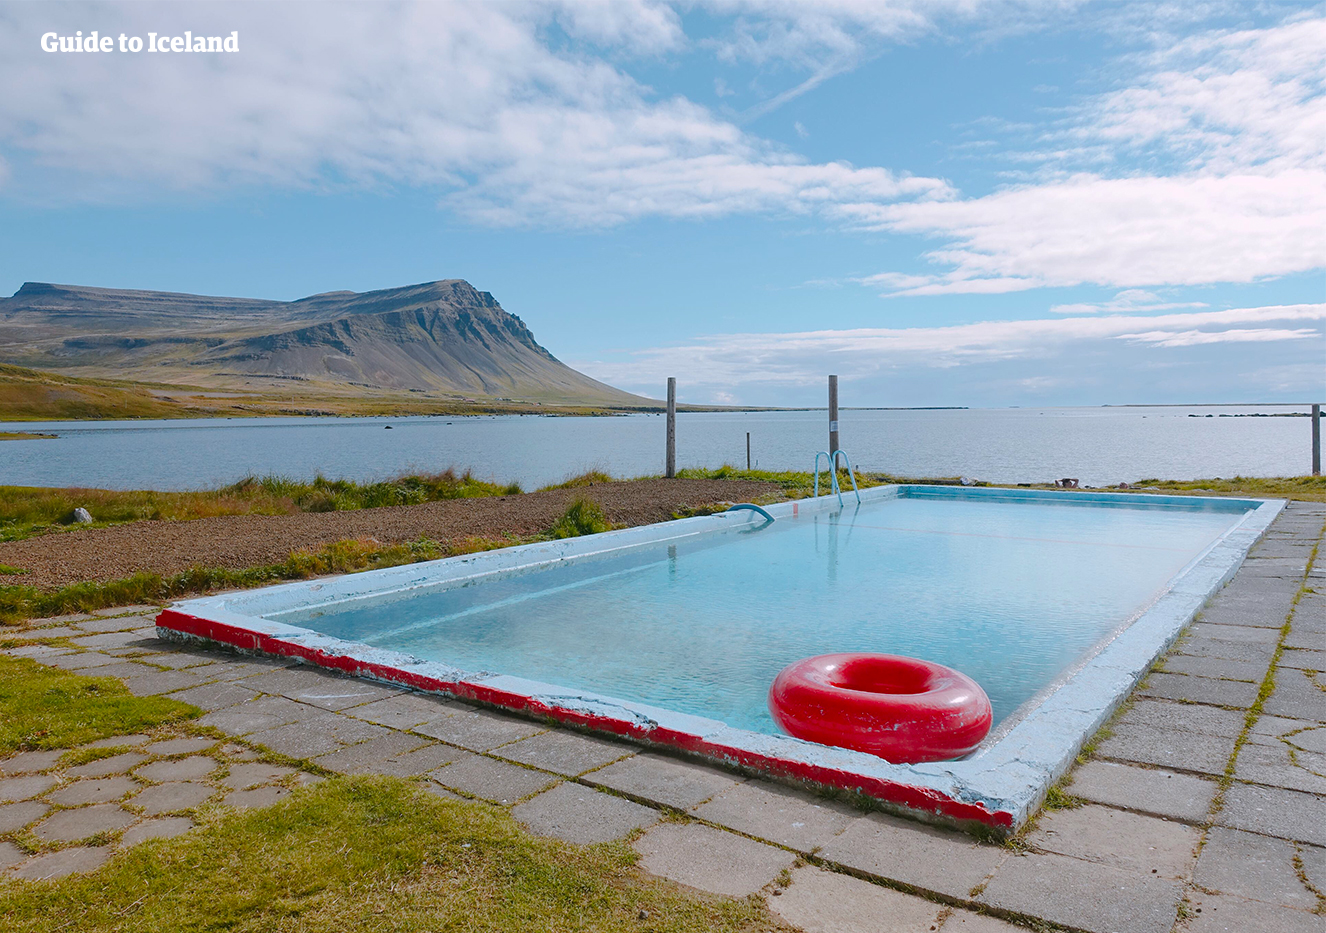 Very few visitors head to the remote Westfjords, even in summer.